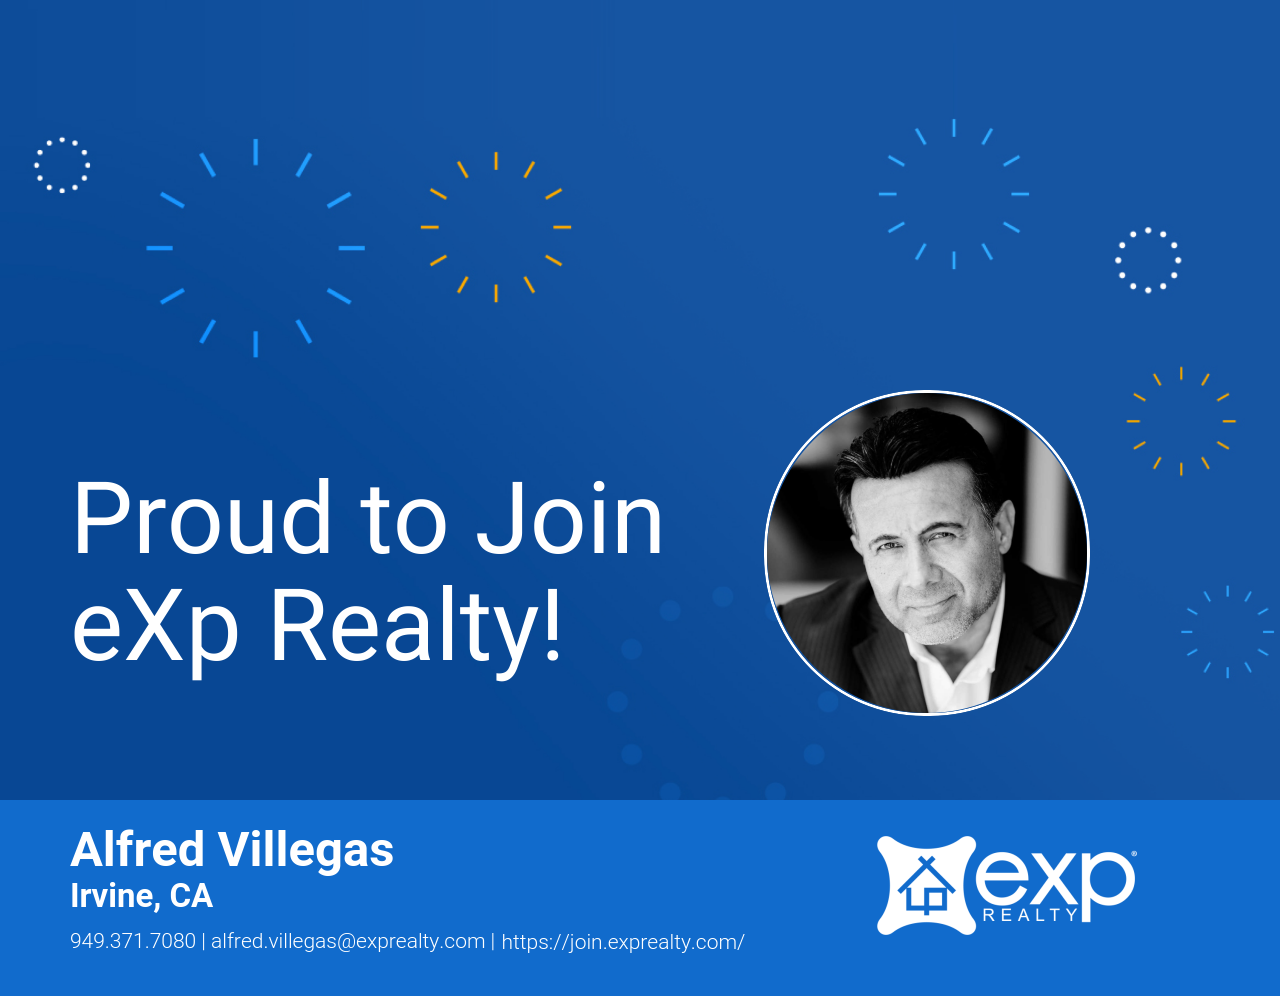 Alfred Villegas Joined eXp Realty!